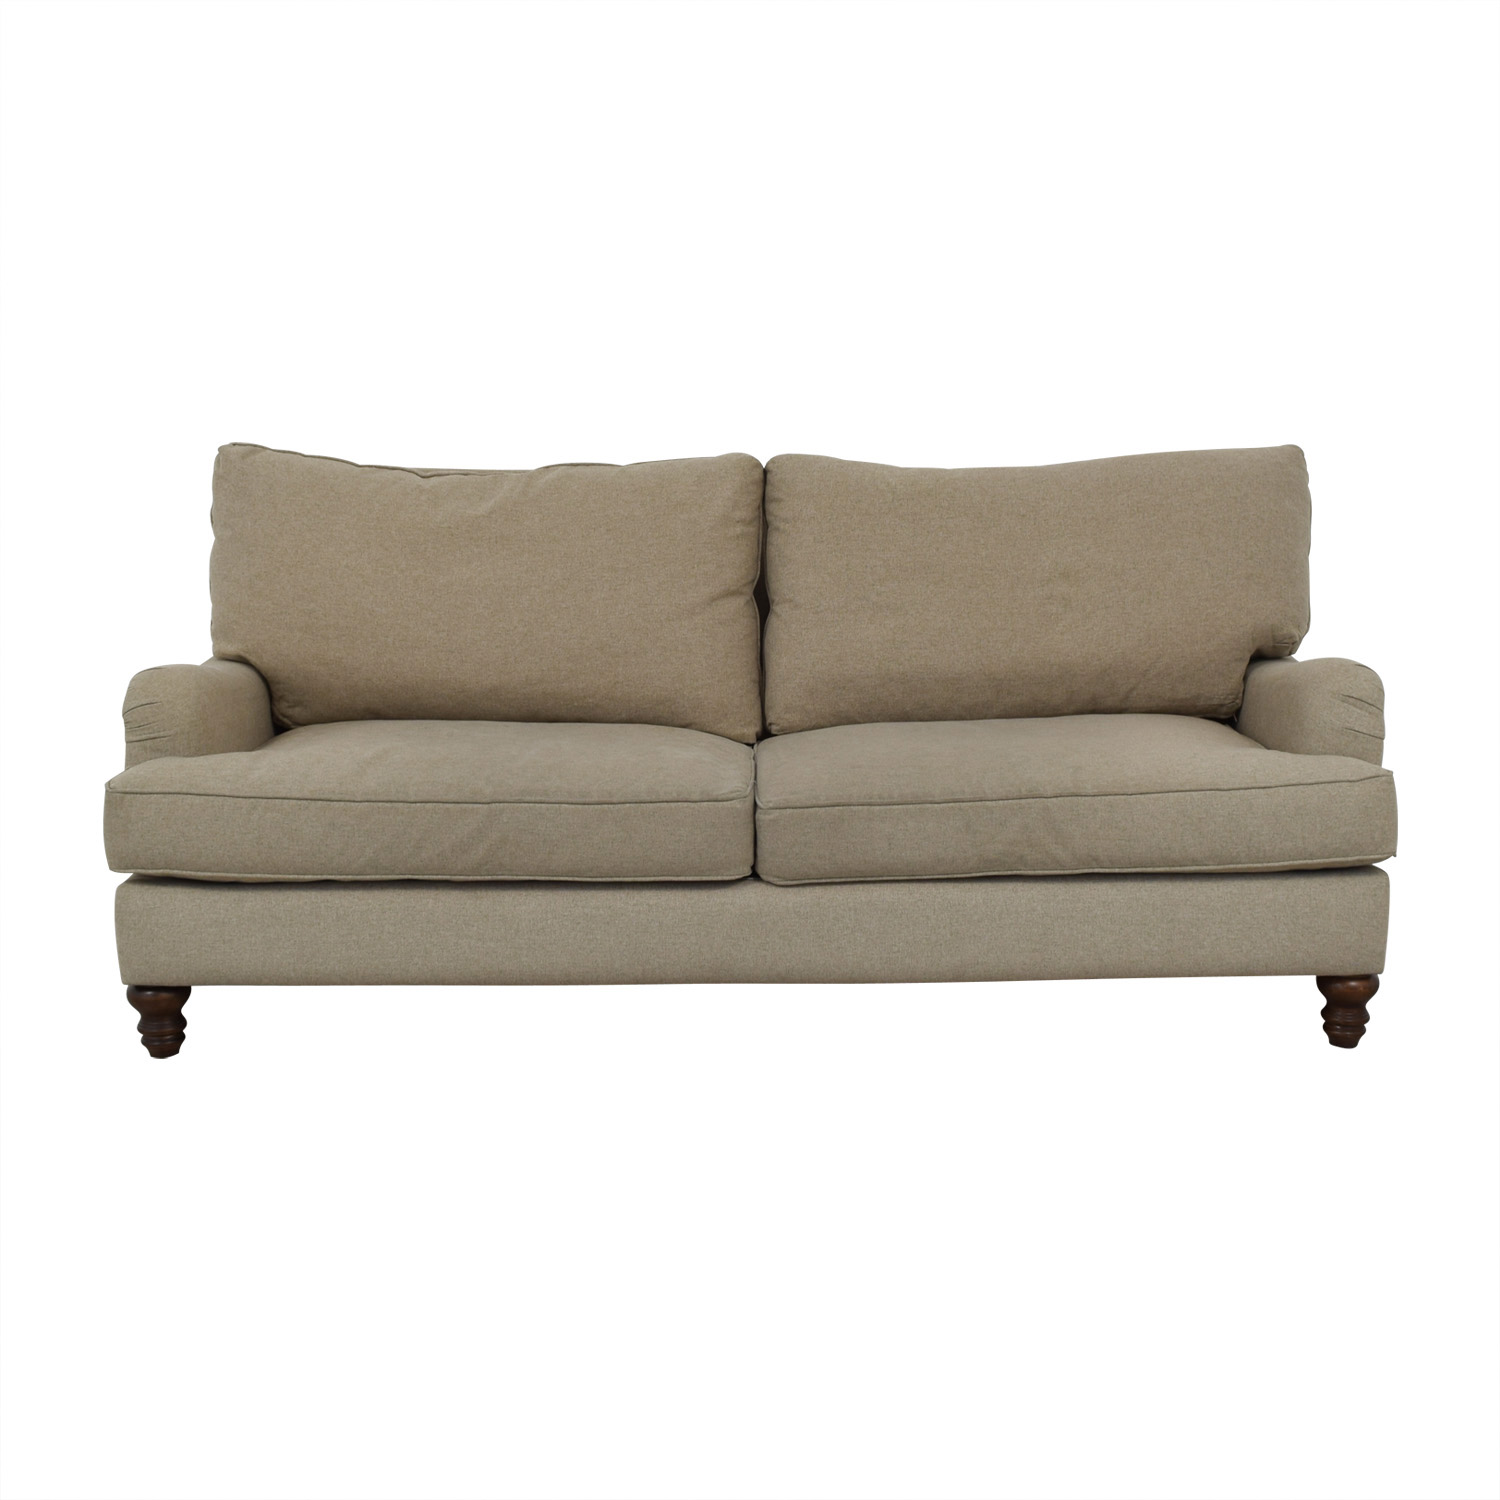 Klaussner Furniture Klaussner Furniture Distinctions Beige Two-Cushion Sofa Classic Sofas